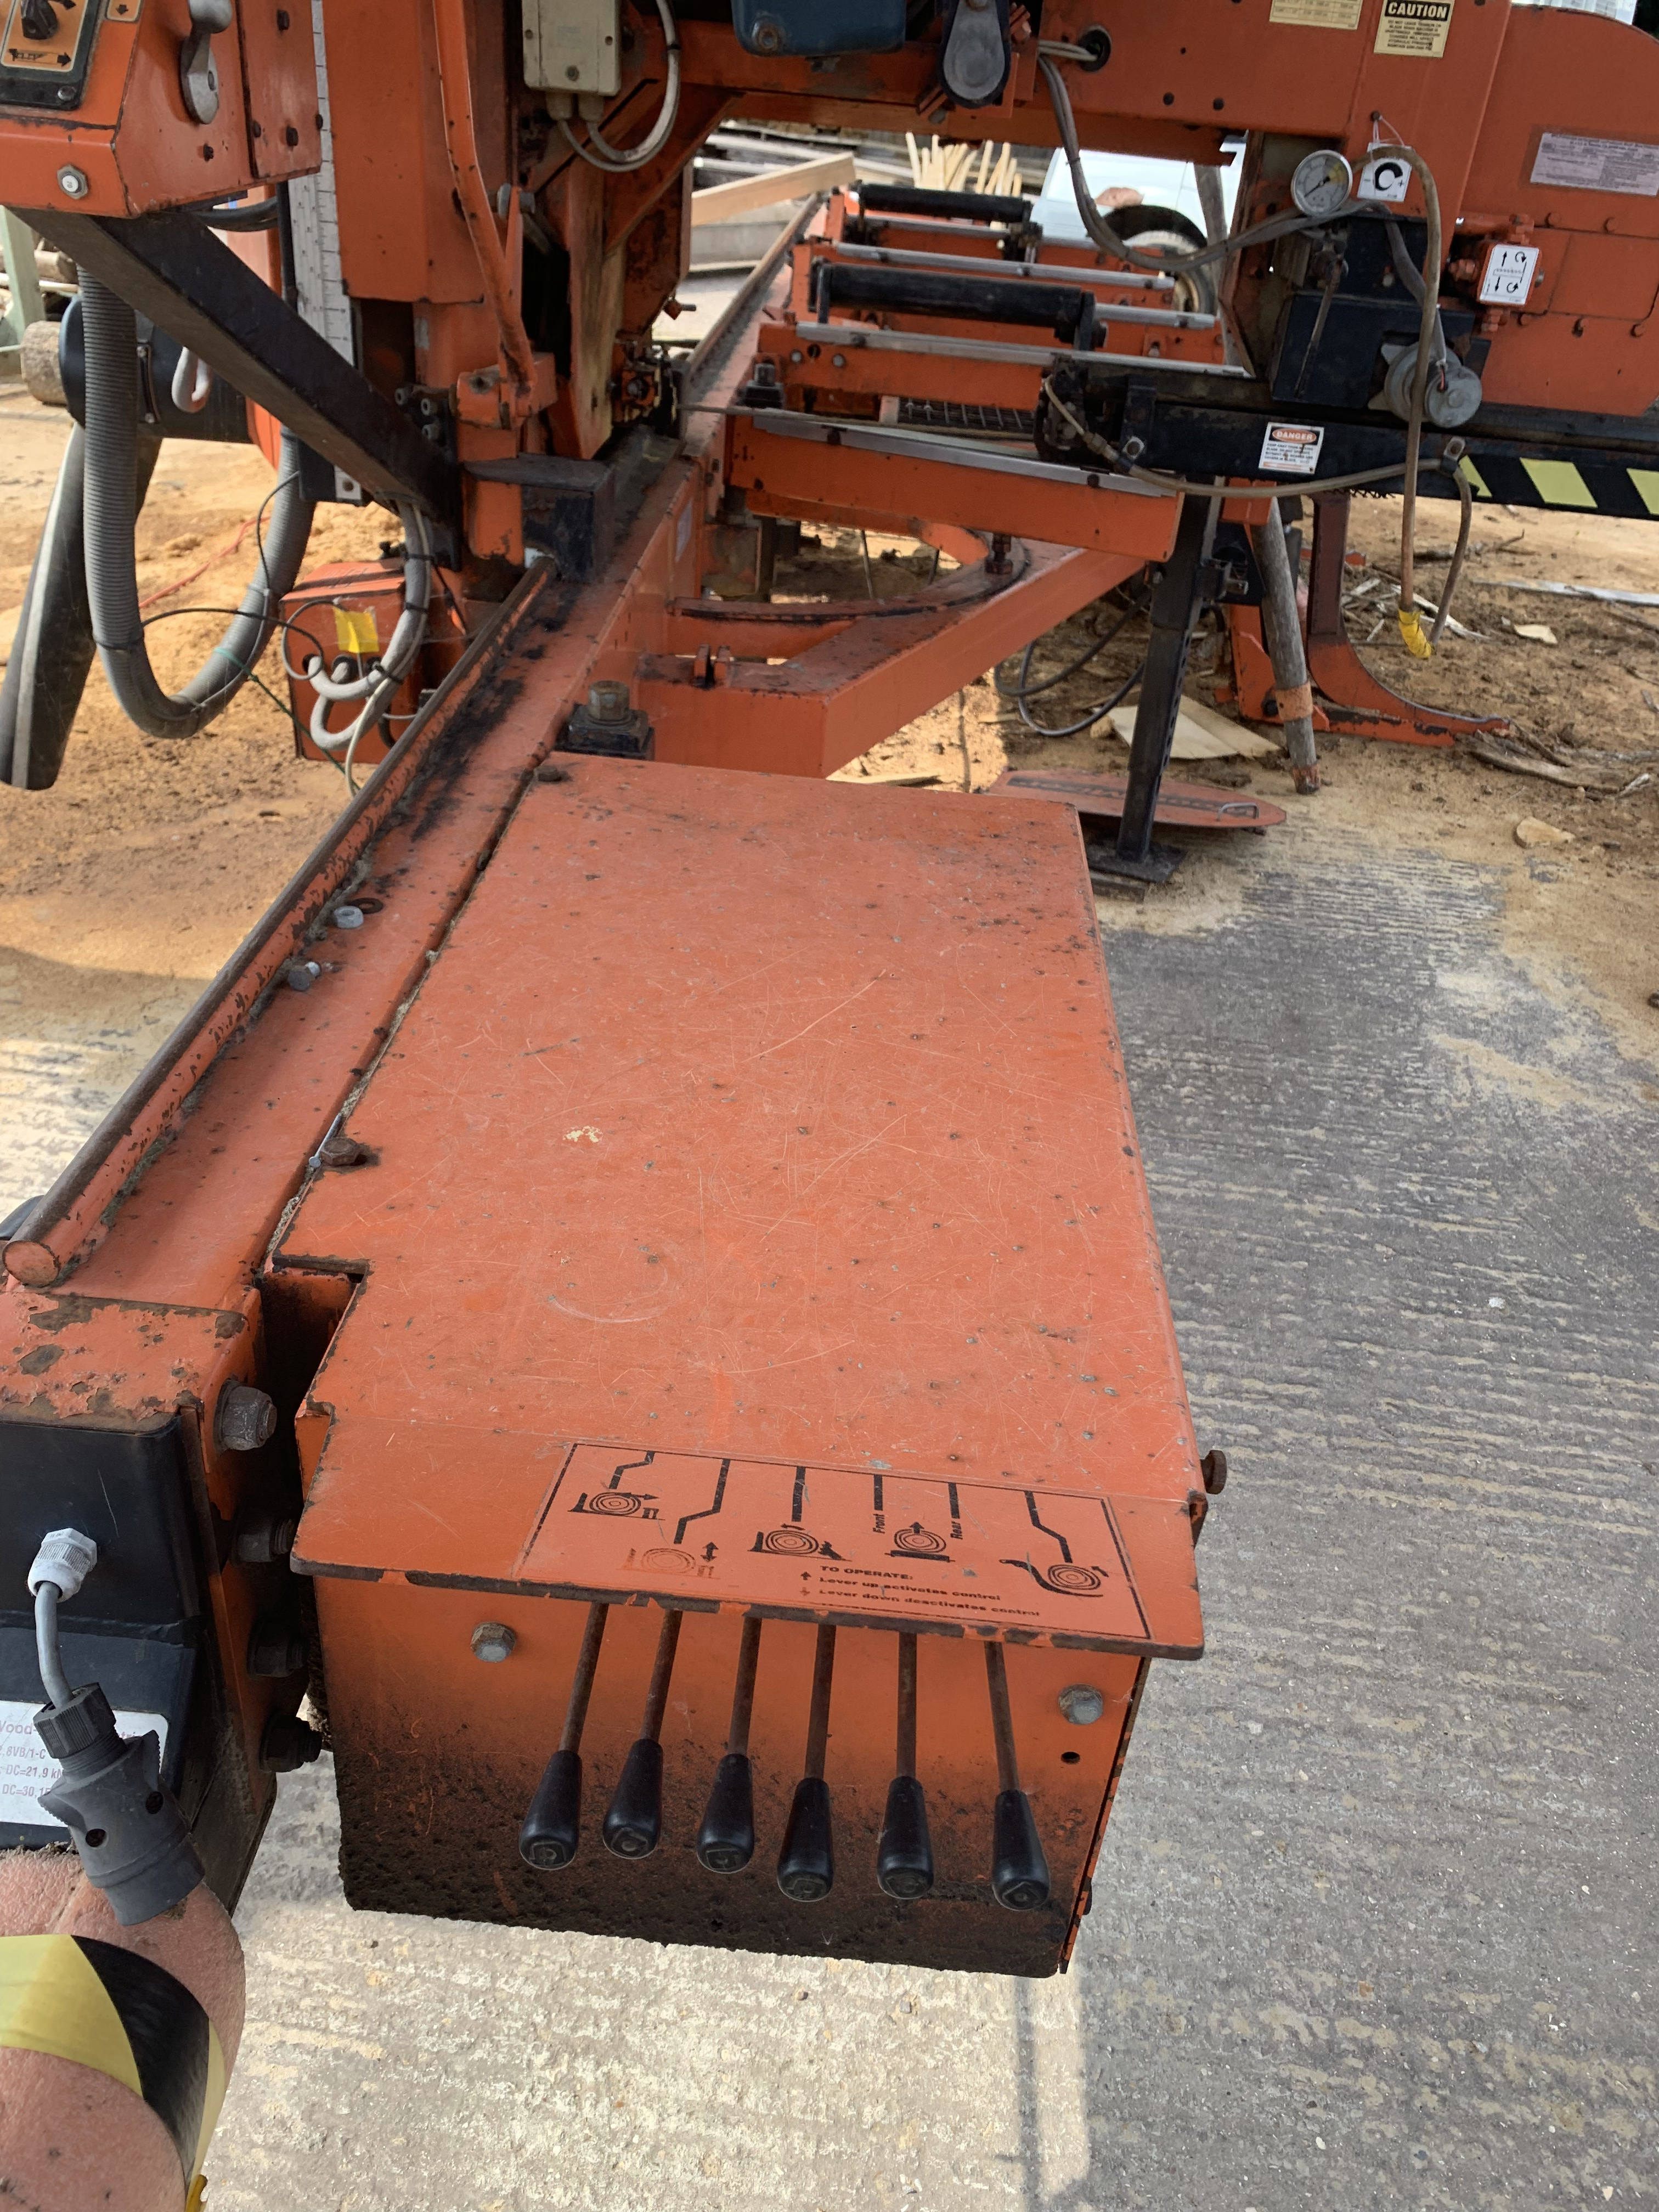 Lot 179 - Wood-Mizer LT40MD335DH PORTABLE SAW MILL, serial no 456c42417EPHE1464 (27/08/07), 2378 hours, SW-